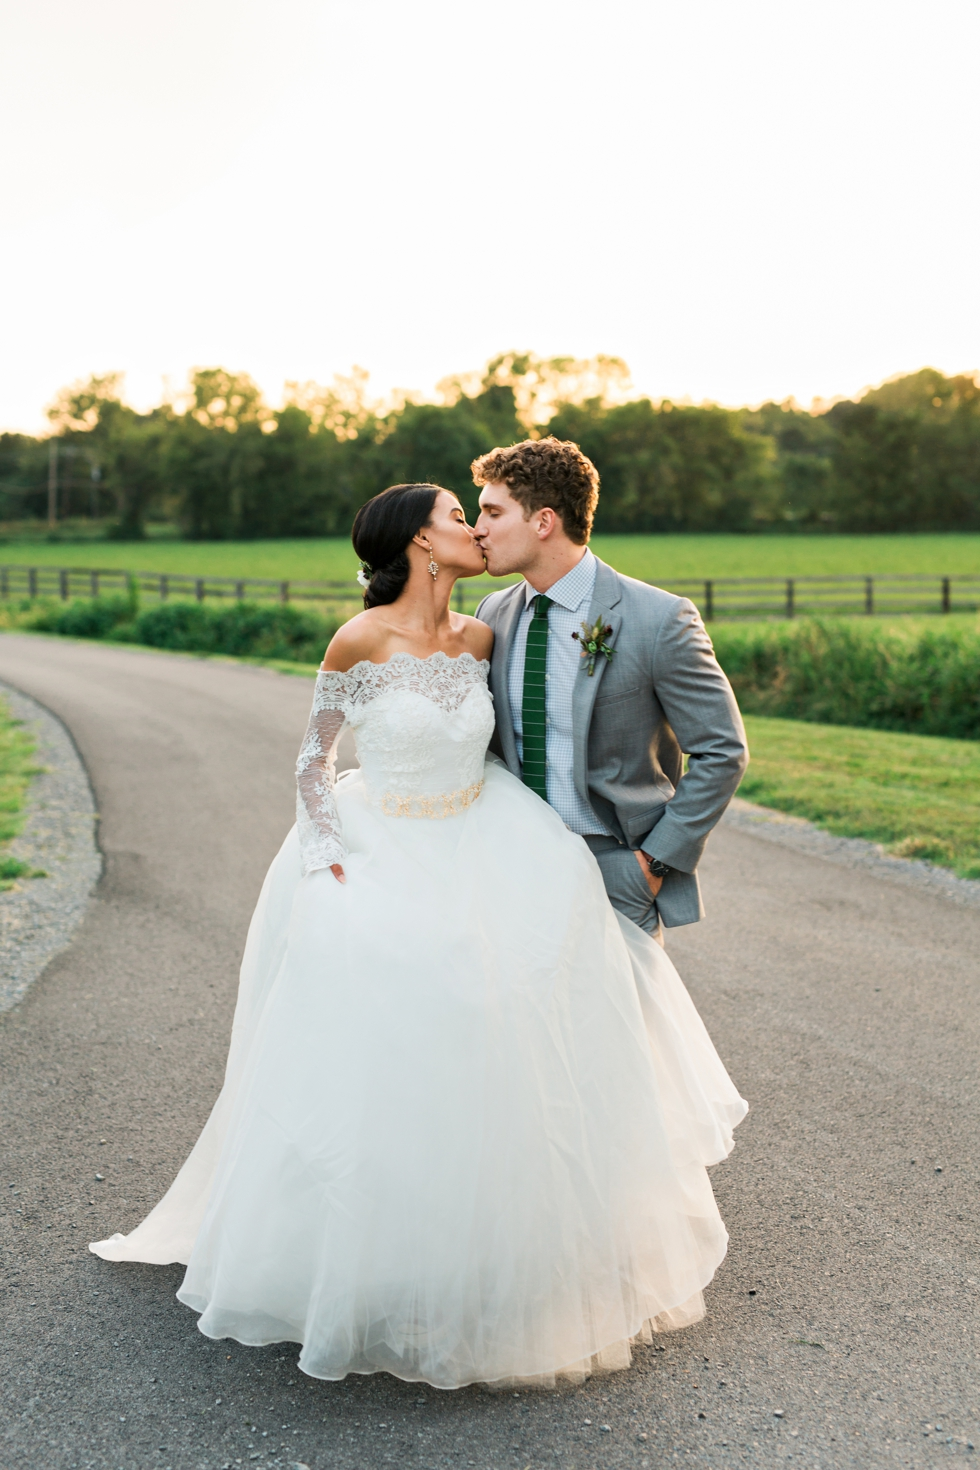 Best Wedding Photographer in Nashville